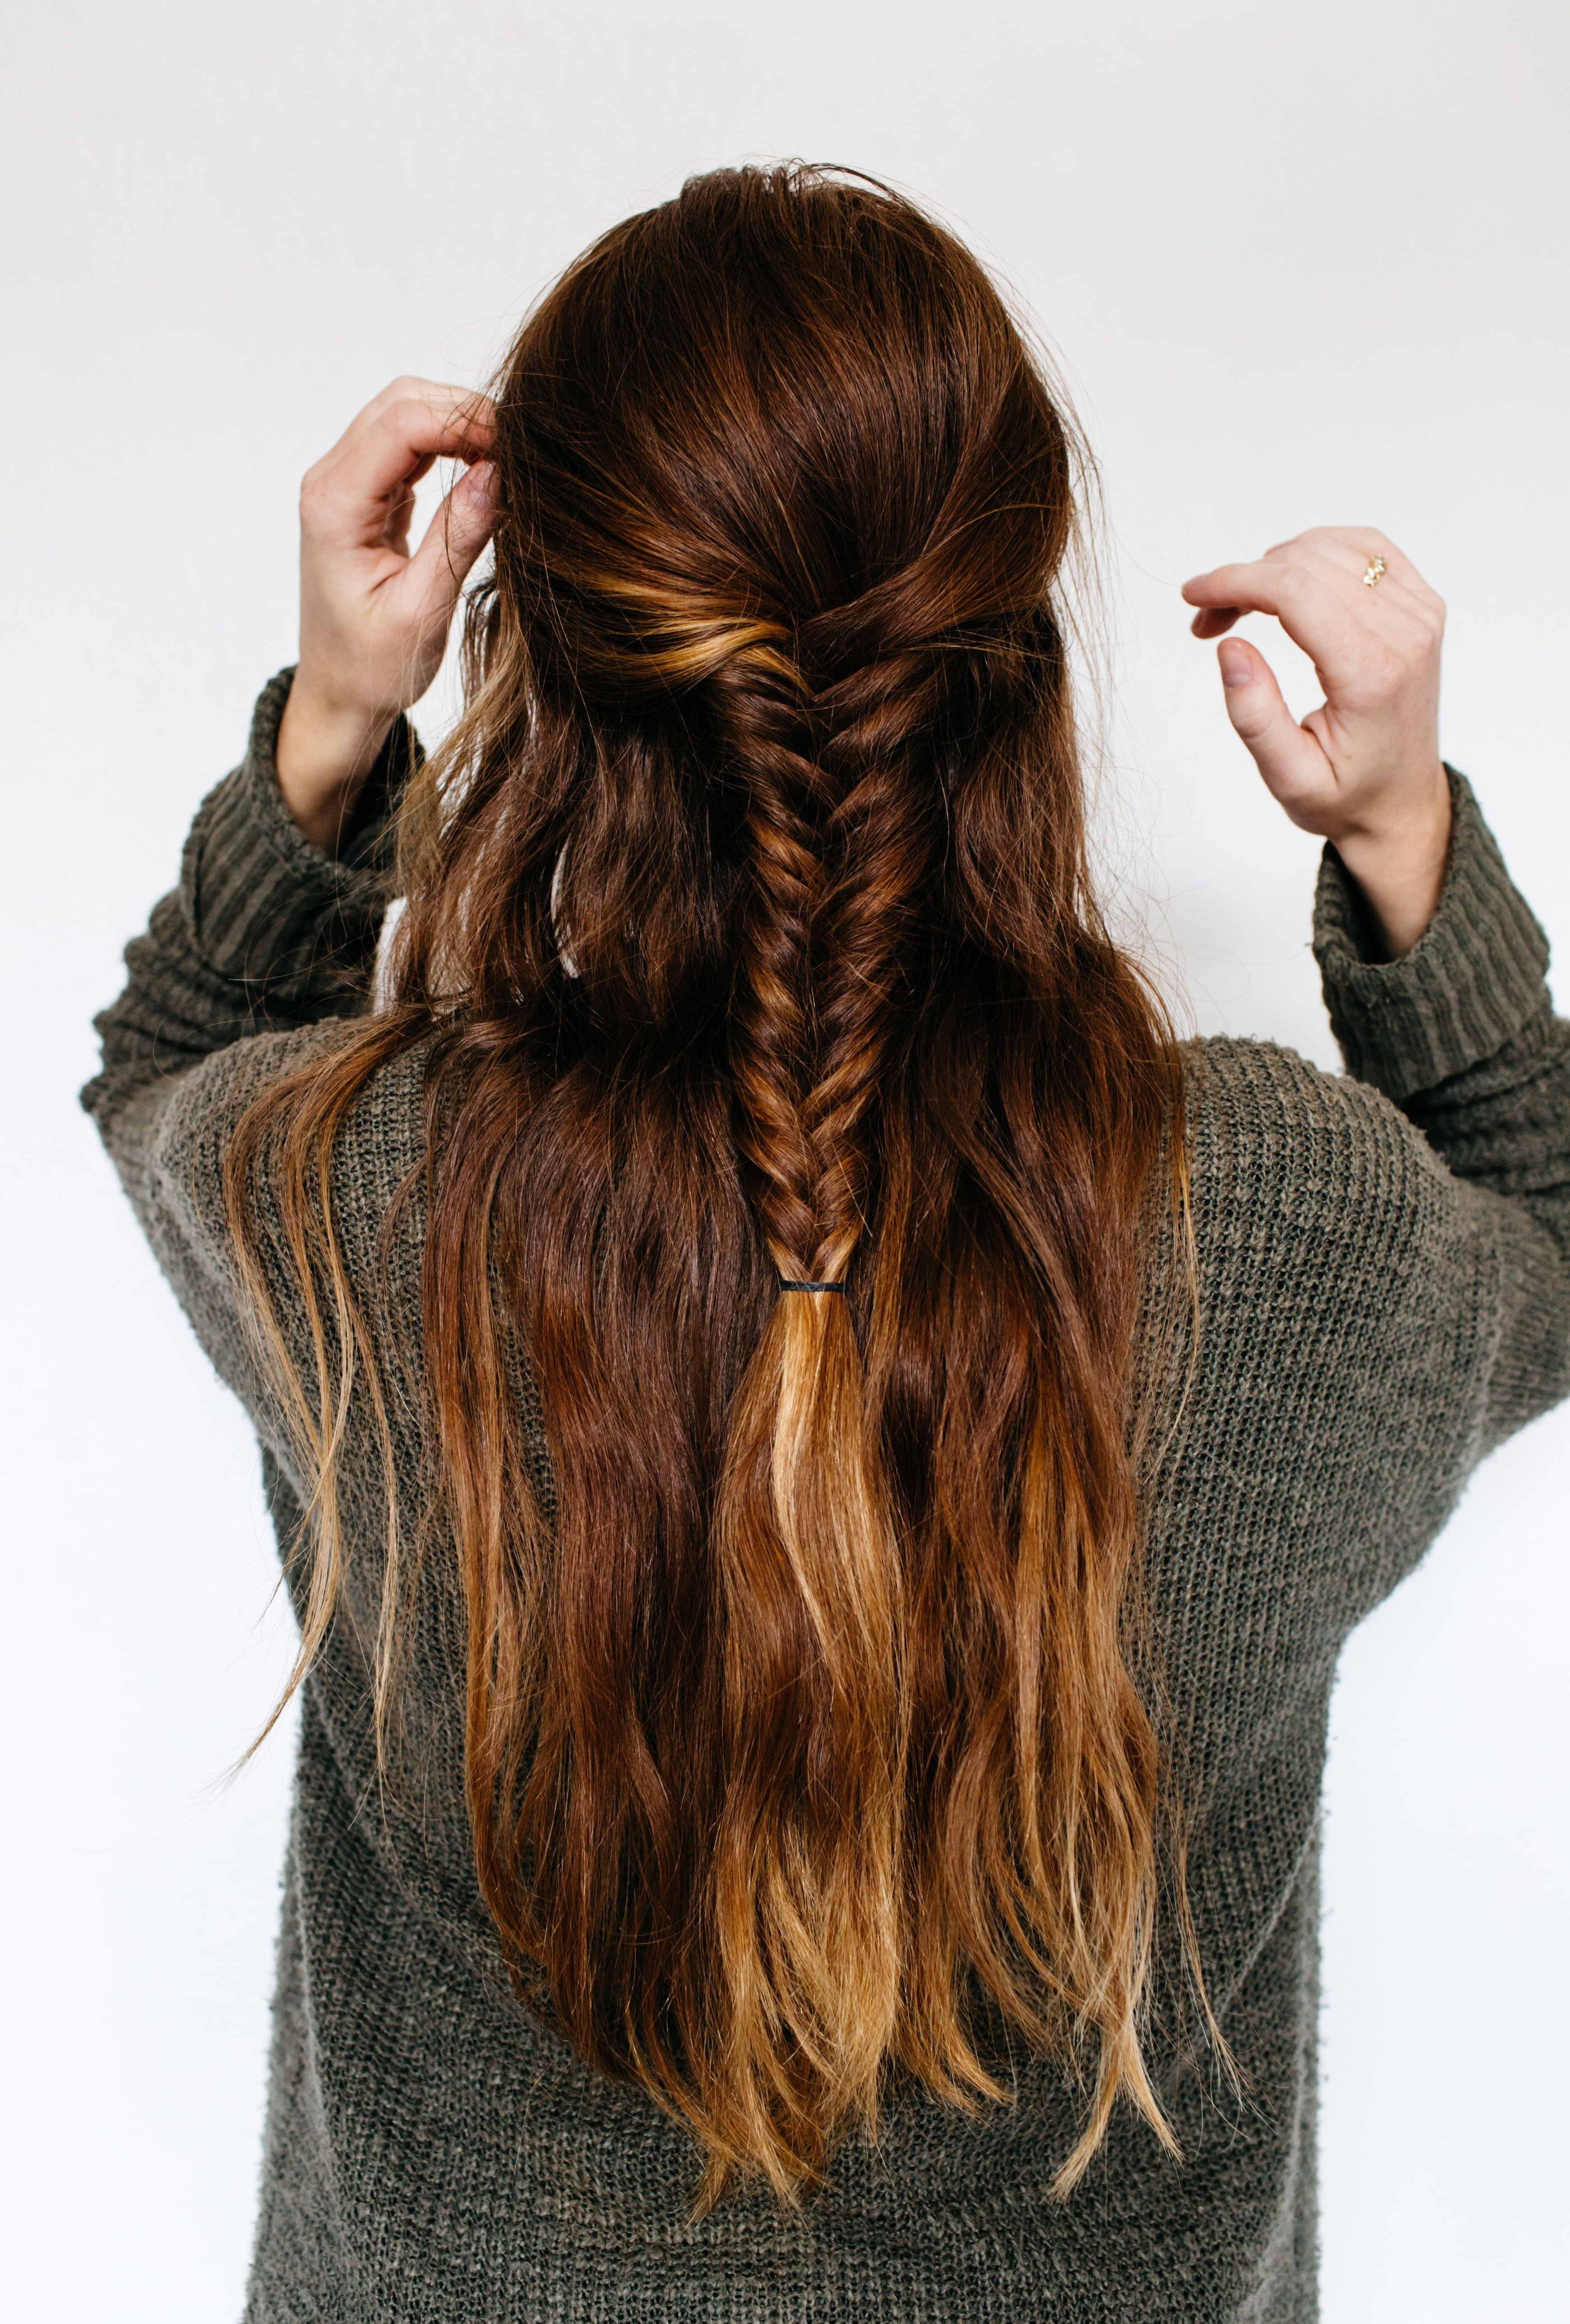 Best And Newest Medium Length Braided Hairstyles With Half Up Half Down Fishtail Braid Hairstyle For Thick, Medium Length (View 2 of 15)